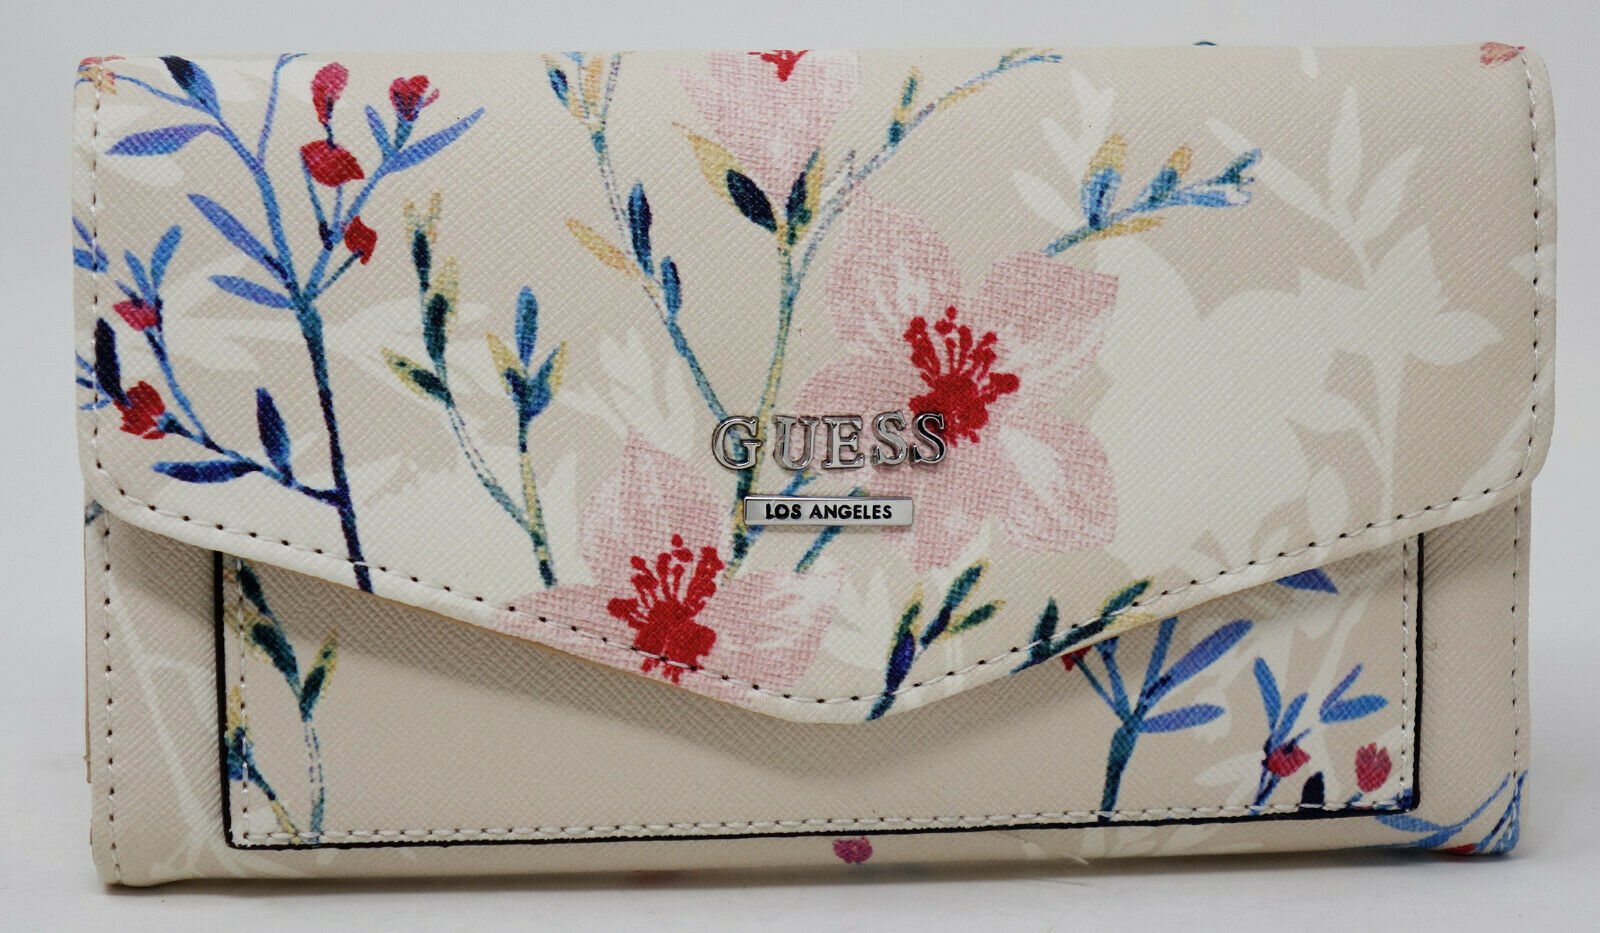 NEW GUESS Women's White Pink Blue Floral Print Slim Trifold Wallet Clutch Bag 1